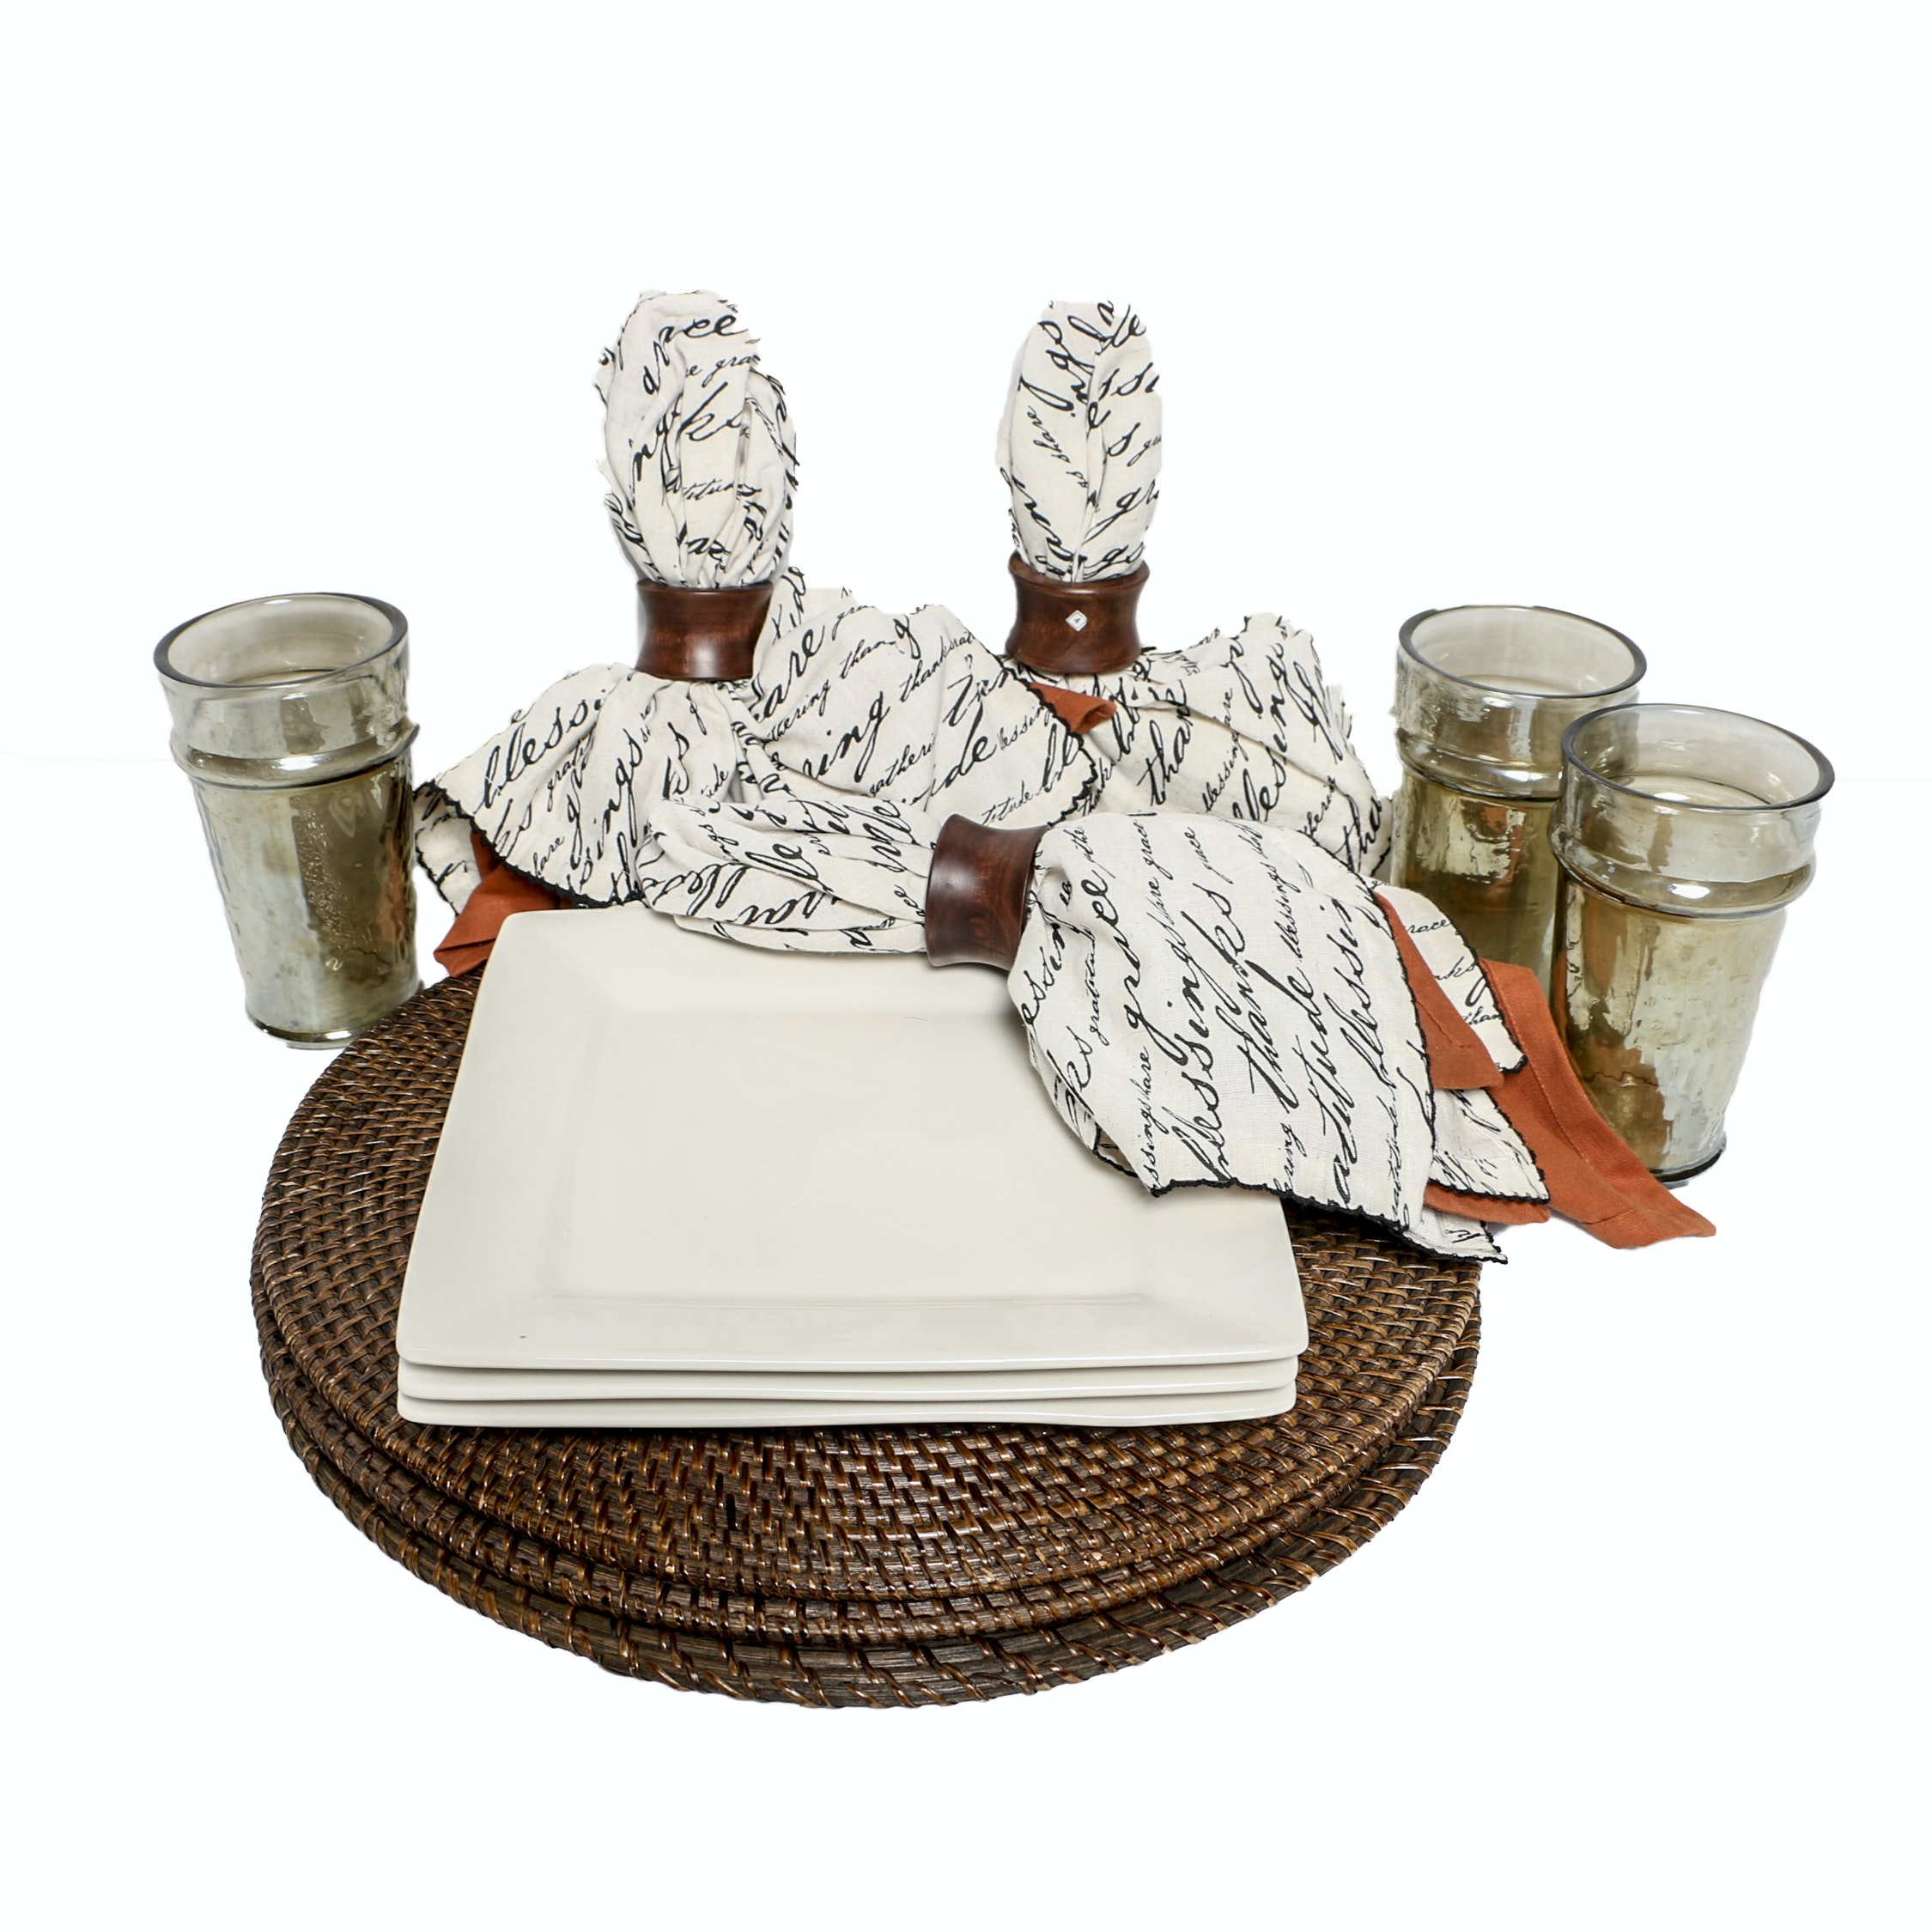 Contemporary Place Settings with Wicker Placemats and Printed Napkins